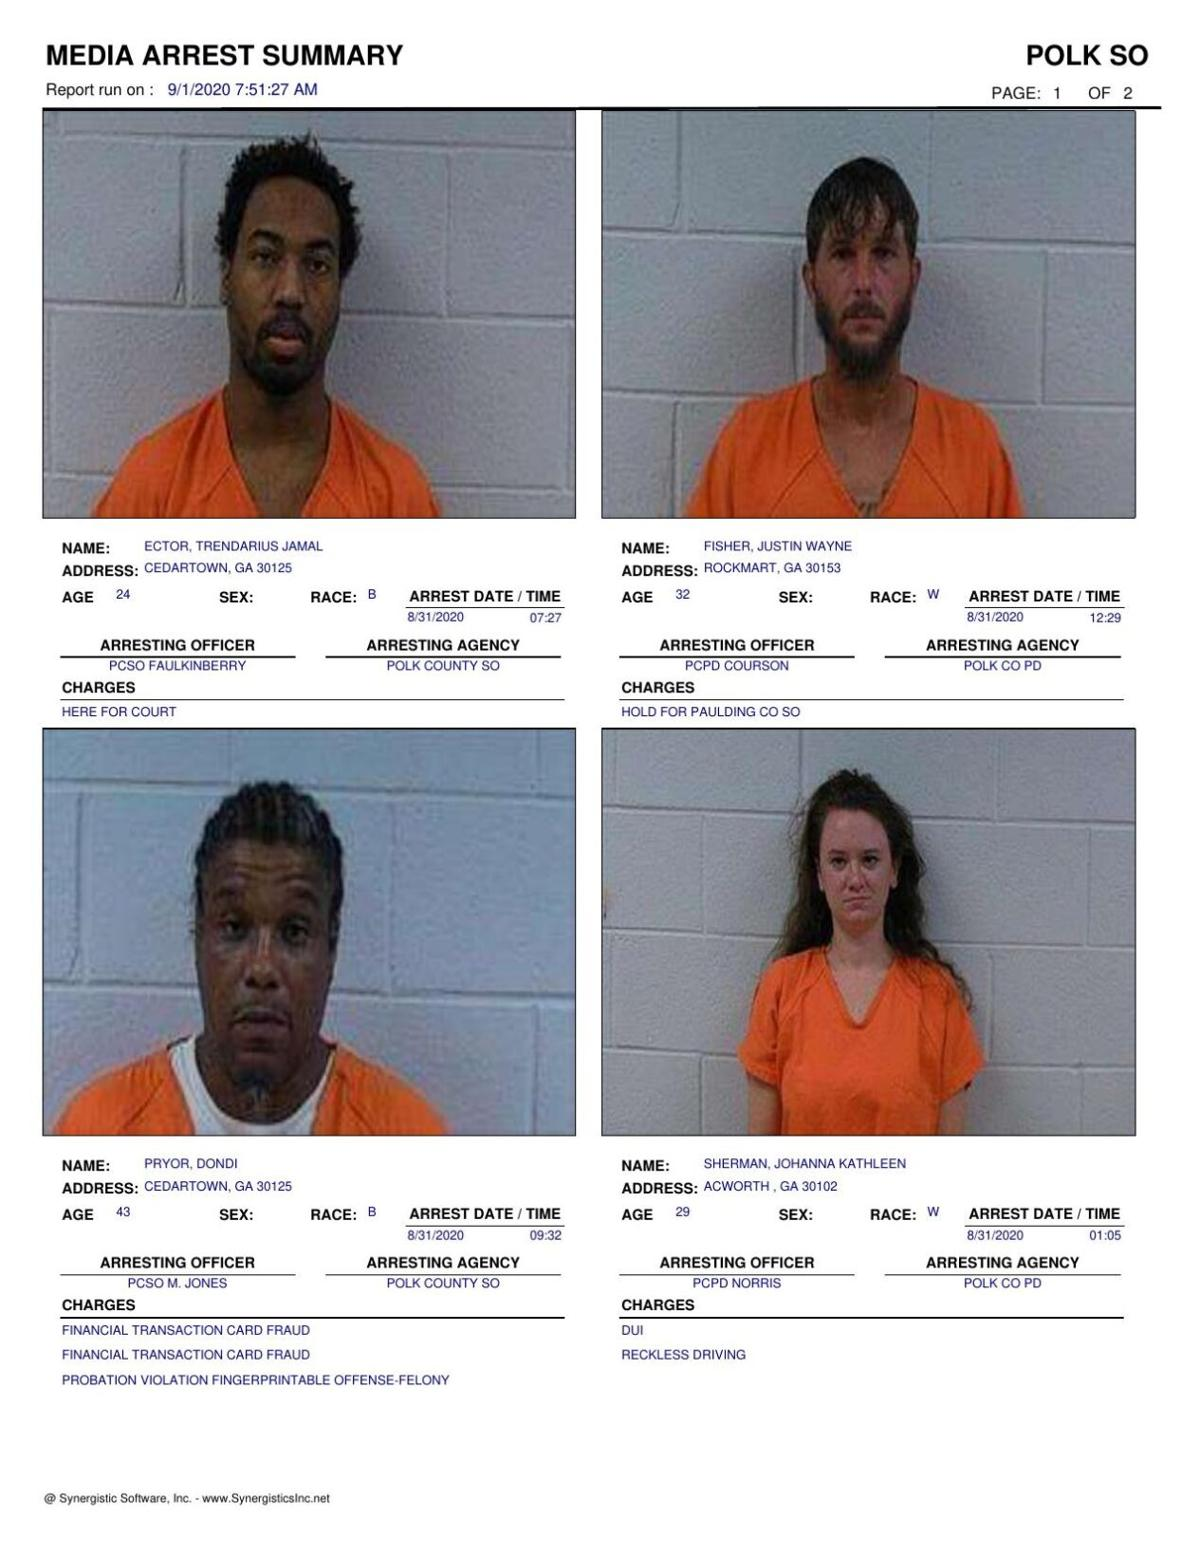 Polk County Jail Report for Tuesday, Sept. 1